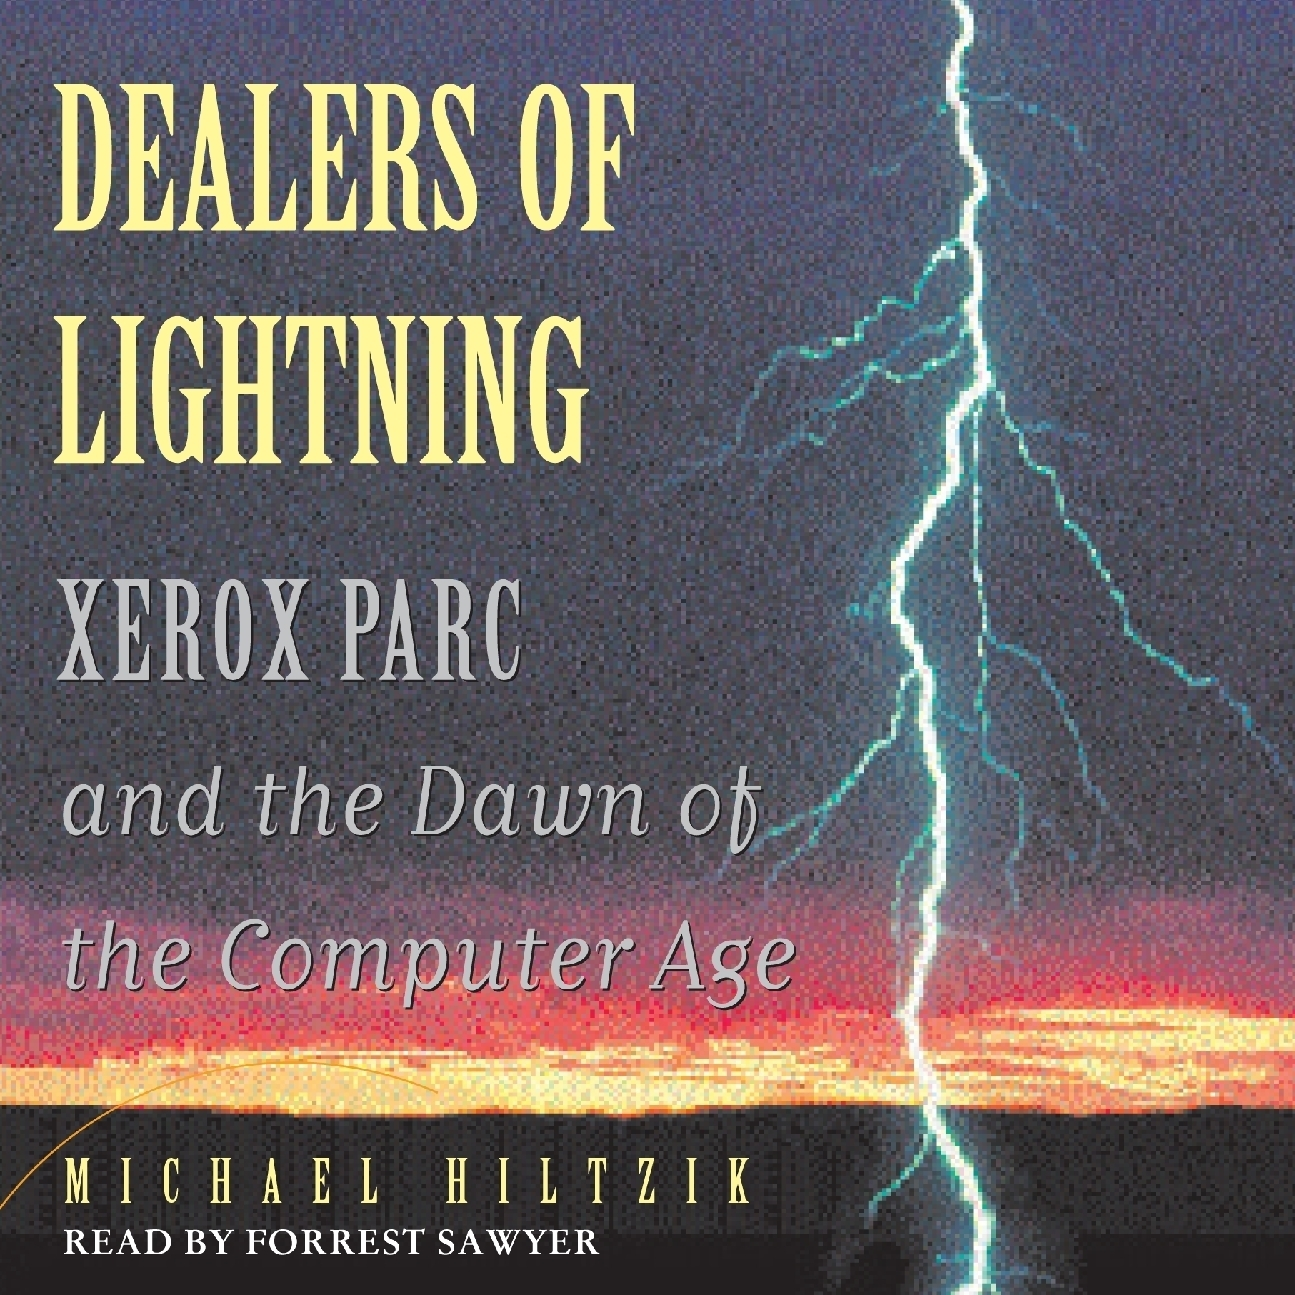 Printable Dealers of Lightning: Xerox PARC and the Dawn of the Computer Age Audiobook Cover Art